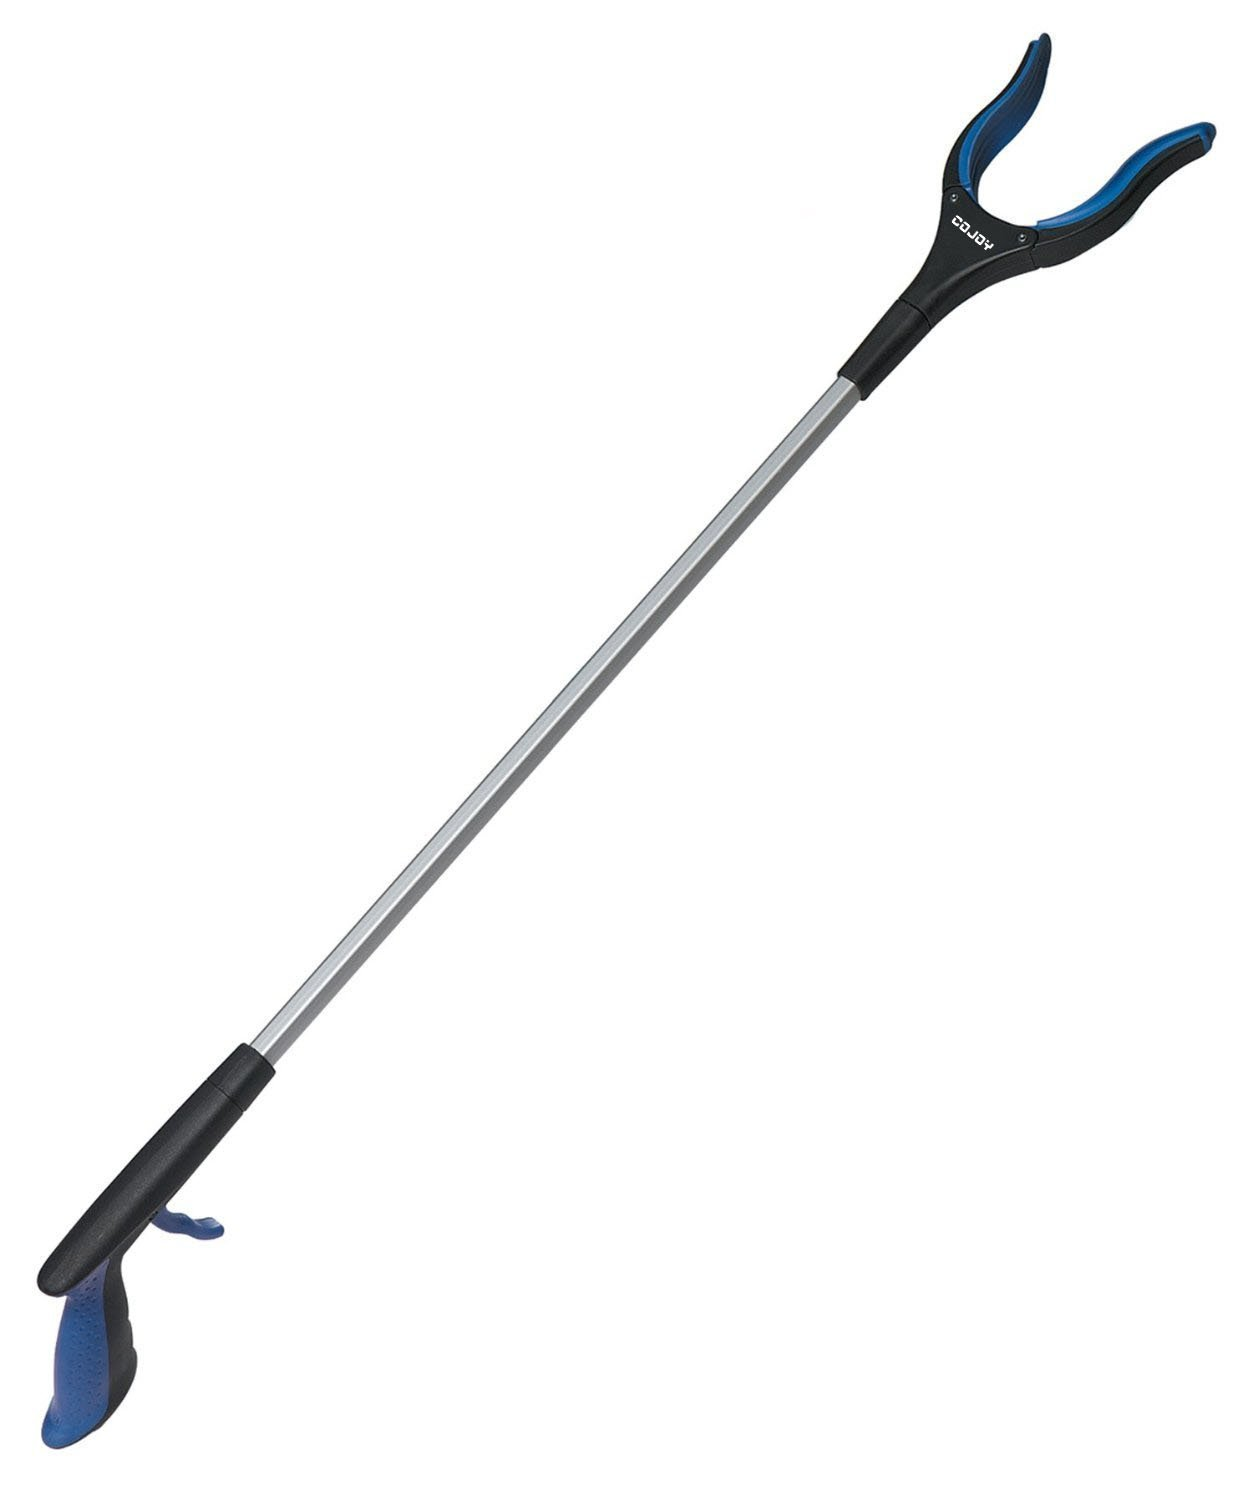 Cojoy 32'' Rotating Reacher Grabber Pickup Tool , Extra Long Handy Mobility Aid ,Handy Arm Extender Makes for Trash Pick Up, Litter Picker, Garden Nabber, Disabled